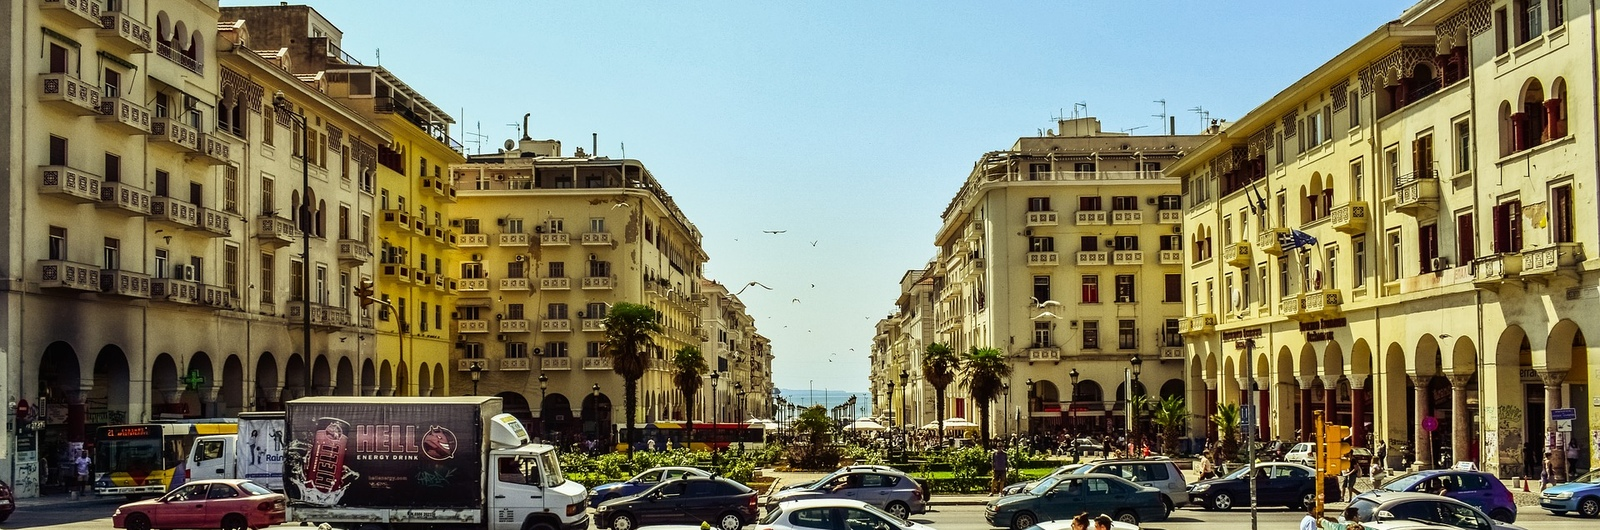 thessaloniki city header